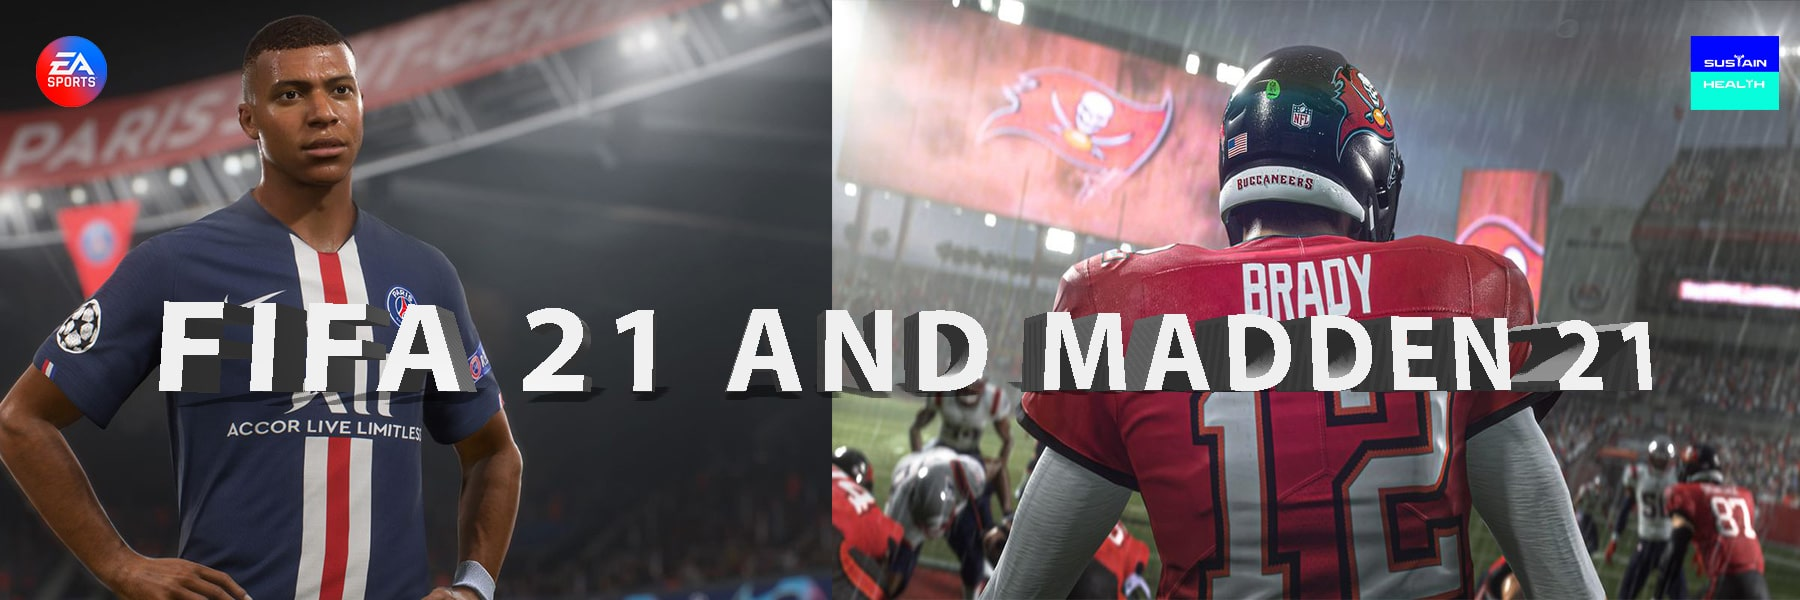 When is Madden NFL 21 and FIFA 21 Available on Next Generation Consoles